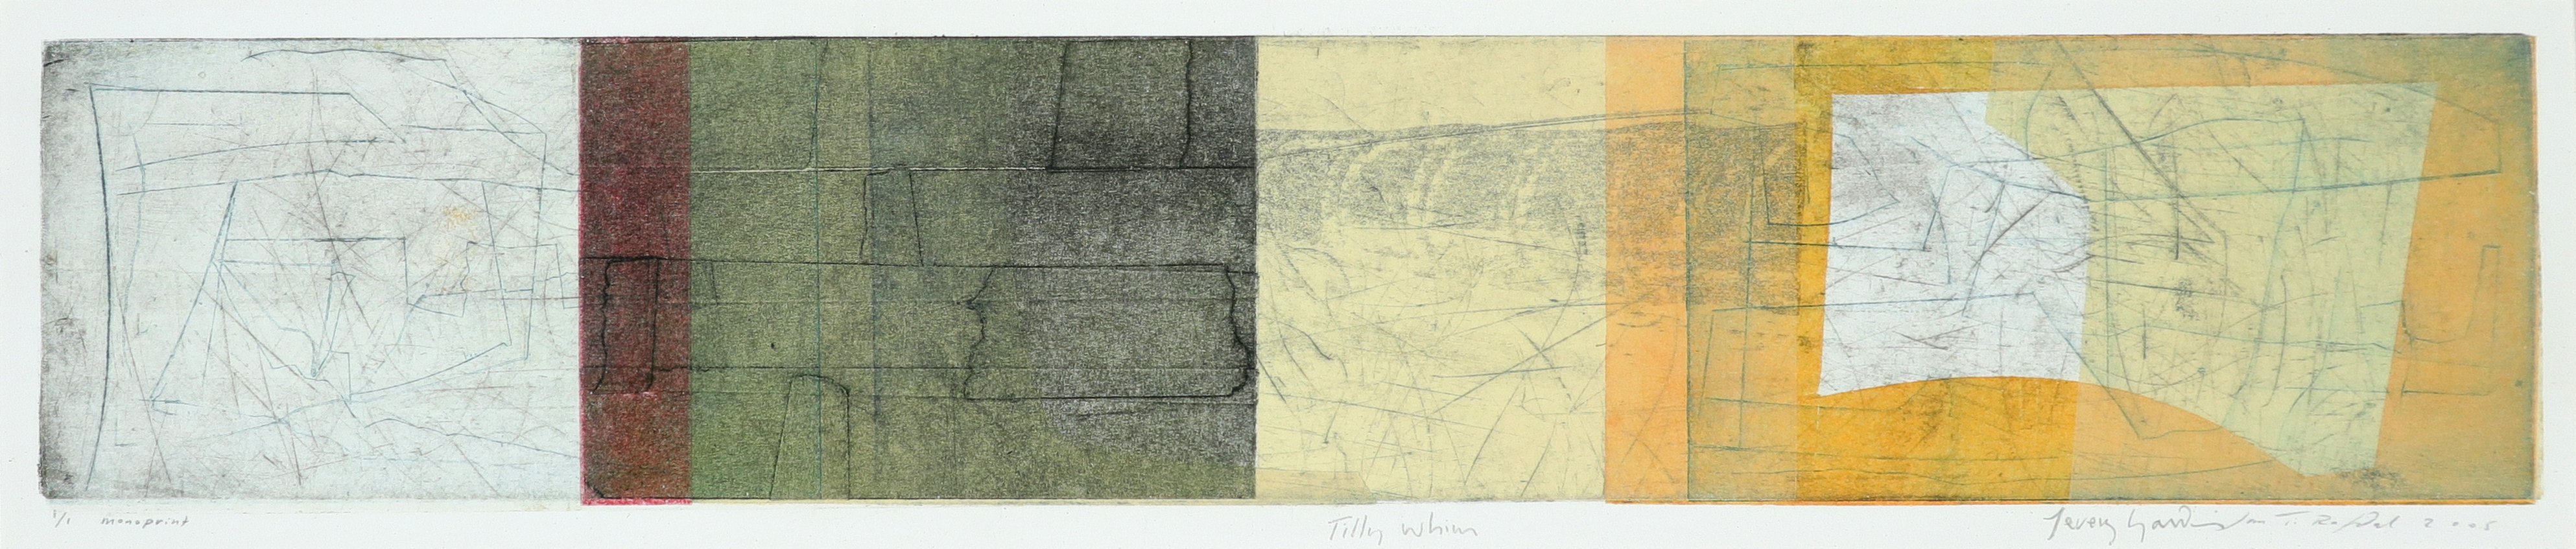 ‡Jeremy Gardiner (b.1957) Tilly Whim; Seacombe, Dorset A pair, both signed, dated and inscribed 1/